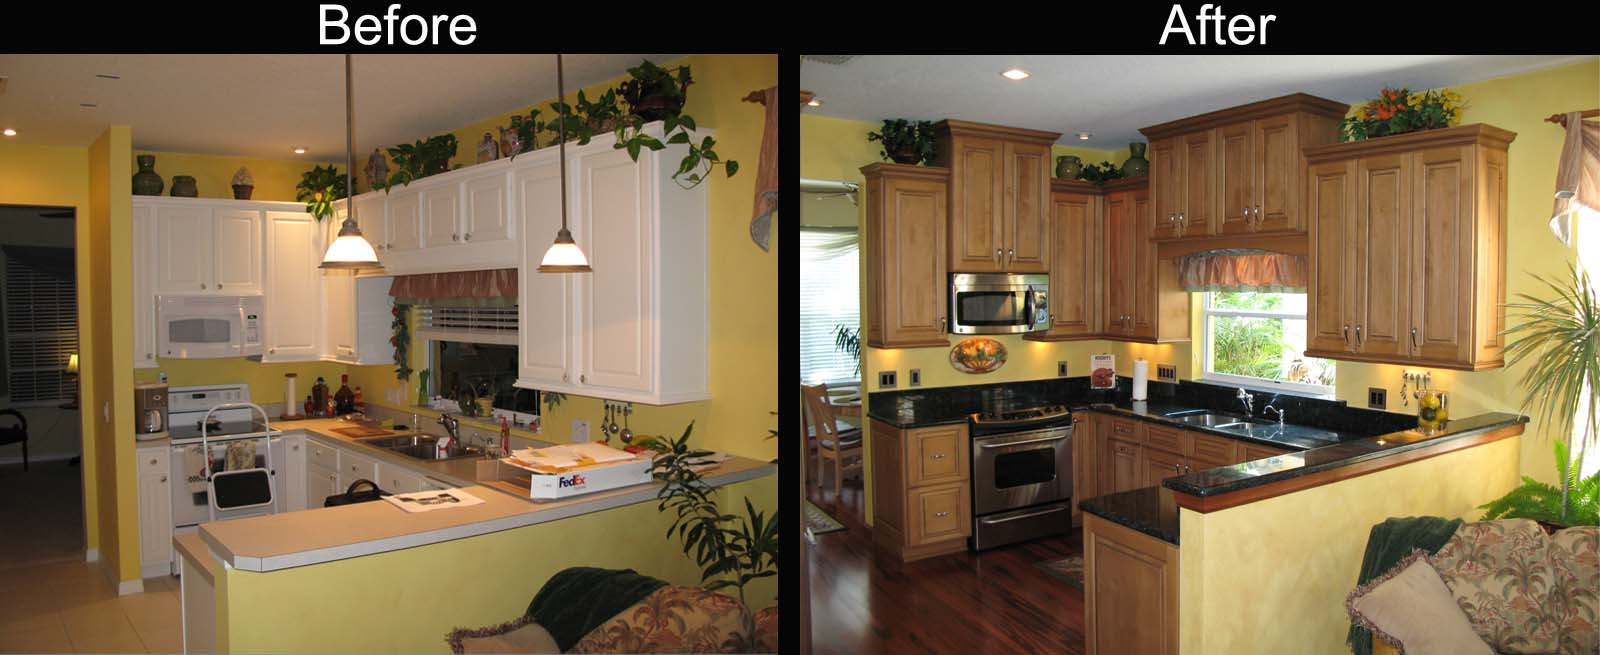 Mobile Home Before And After Remodel Joy Studio Design